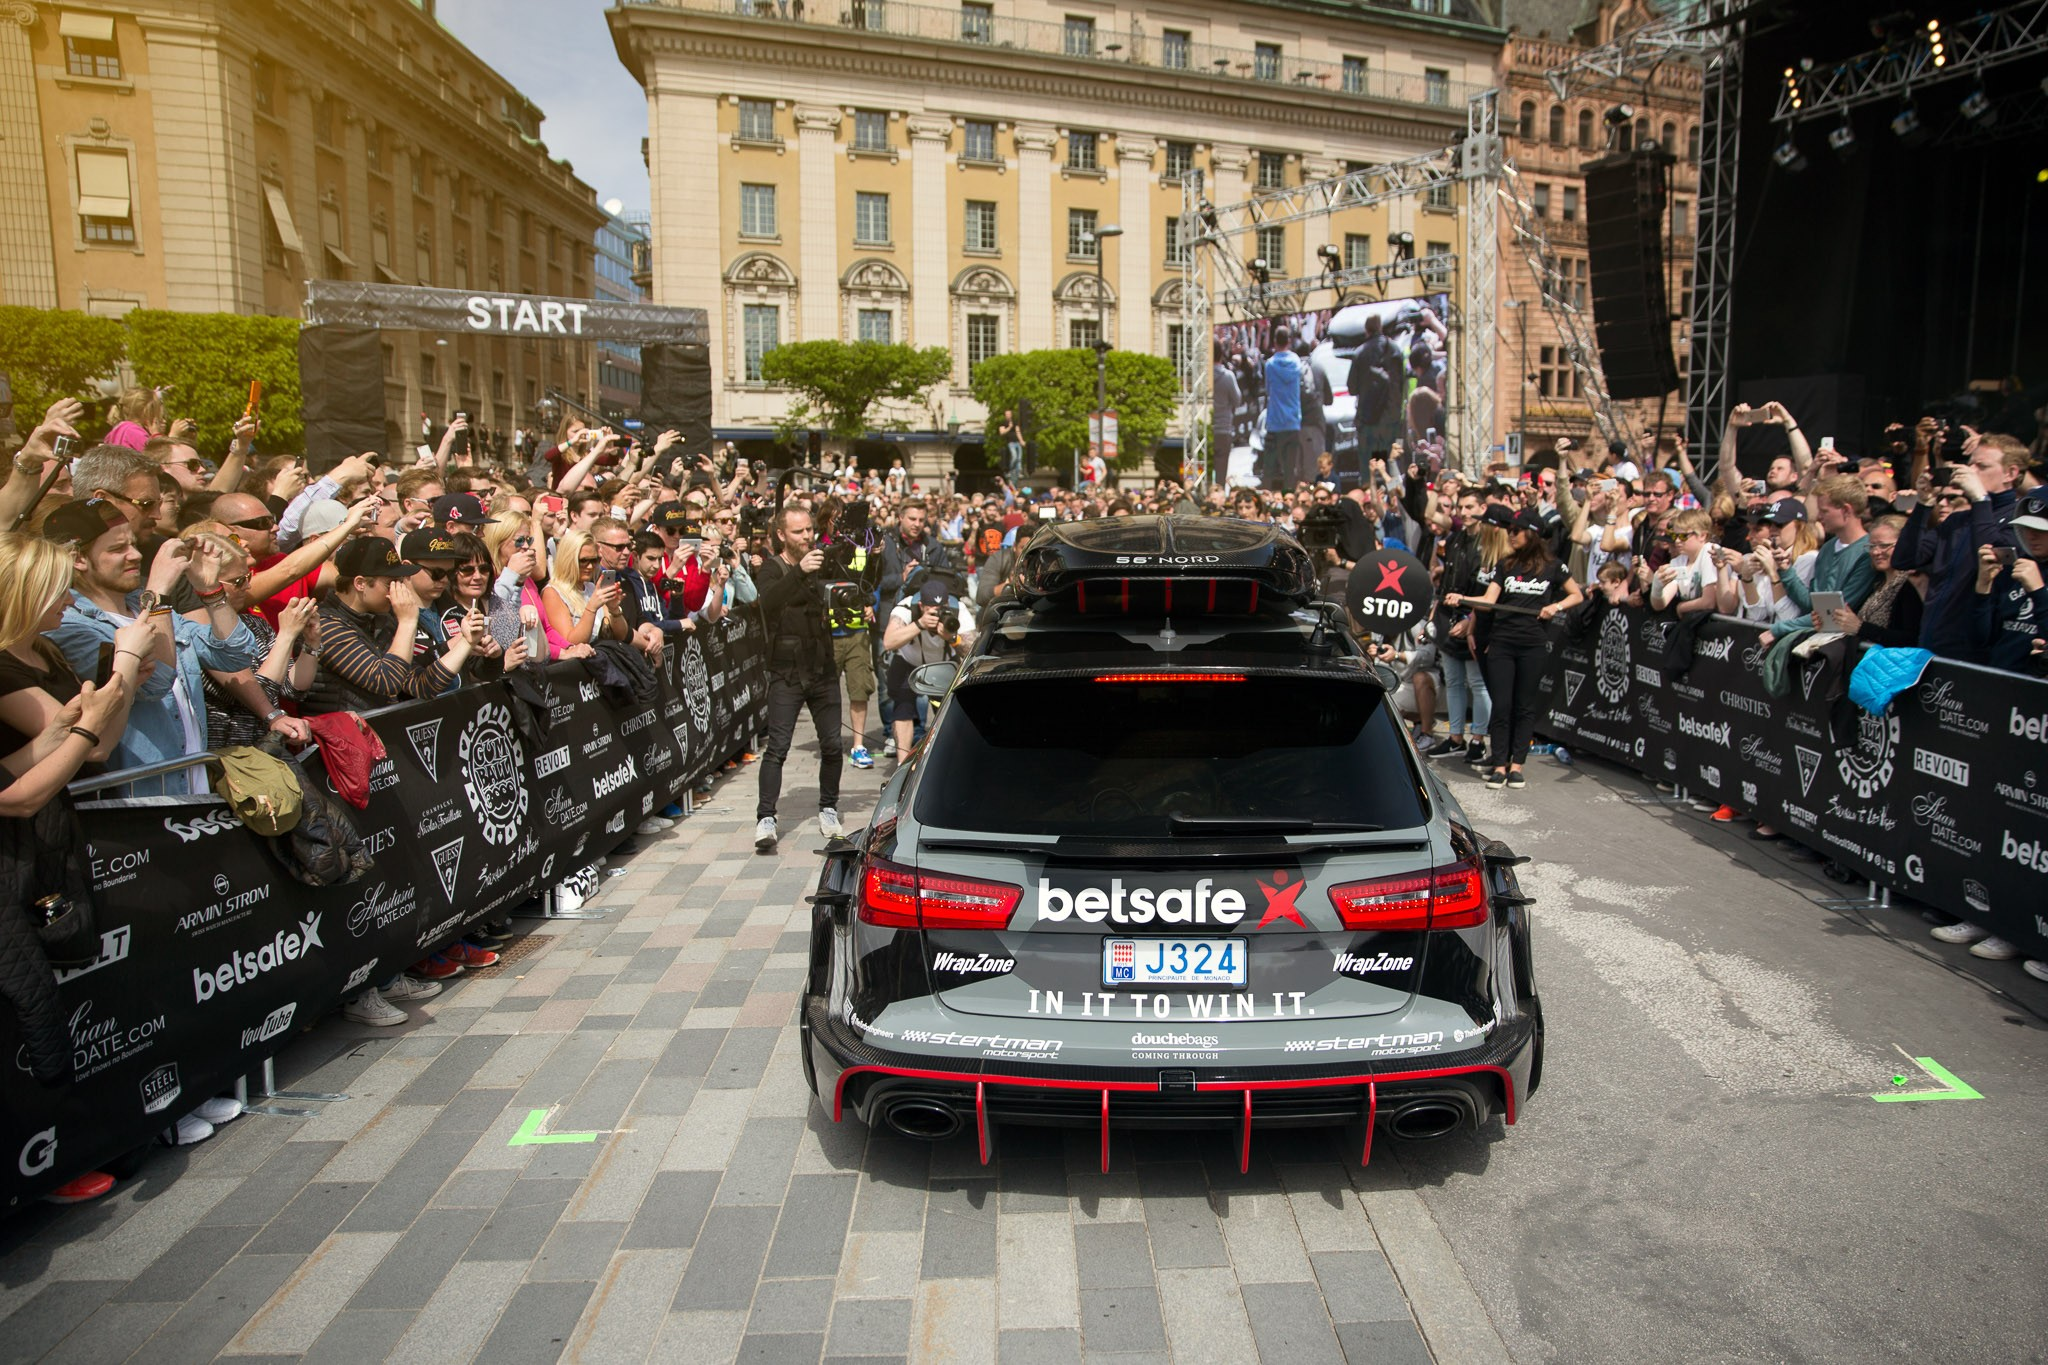 Sports Car 2015 Wallpaper Jon Olsson To Sell His 1 000 Hp Gumball 3000 Rally Audi